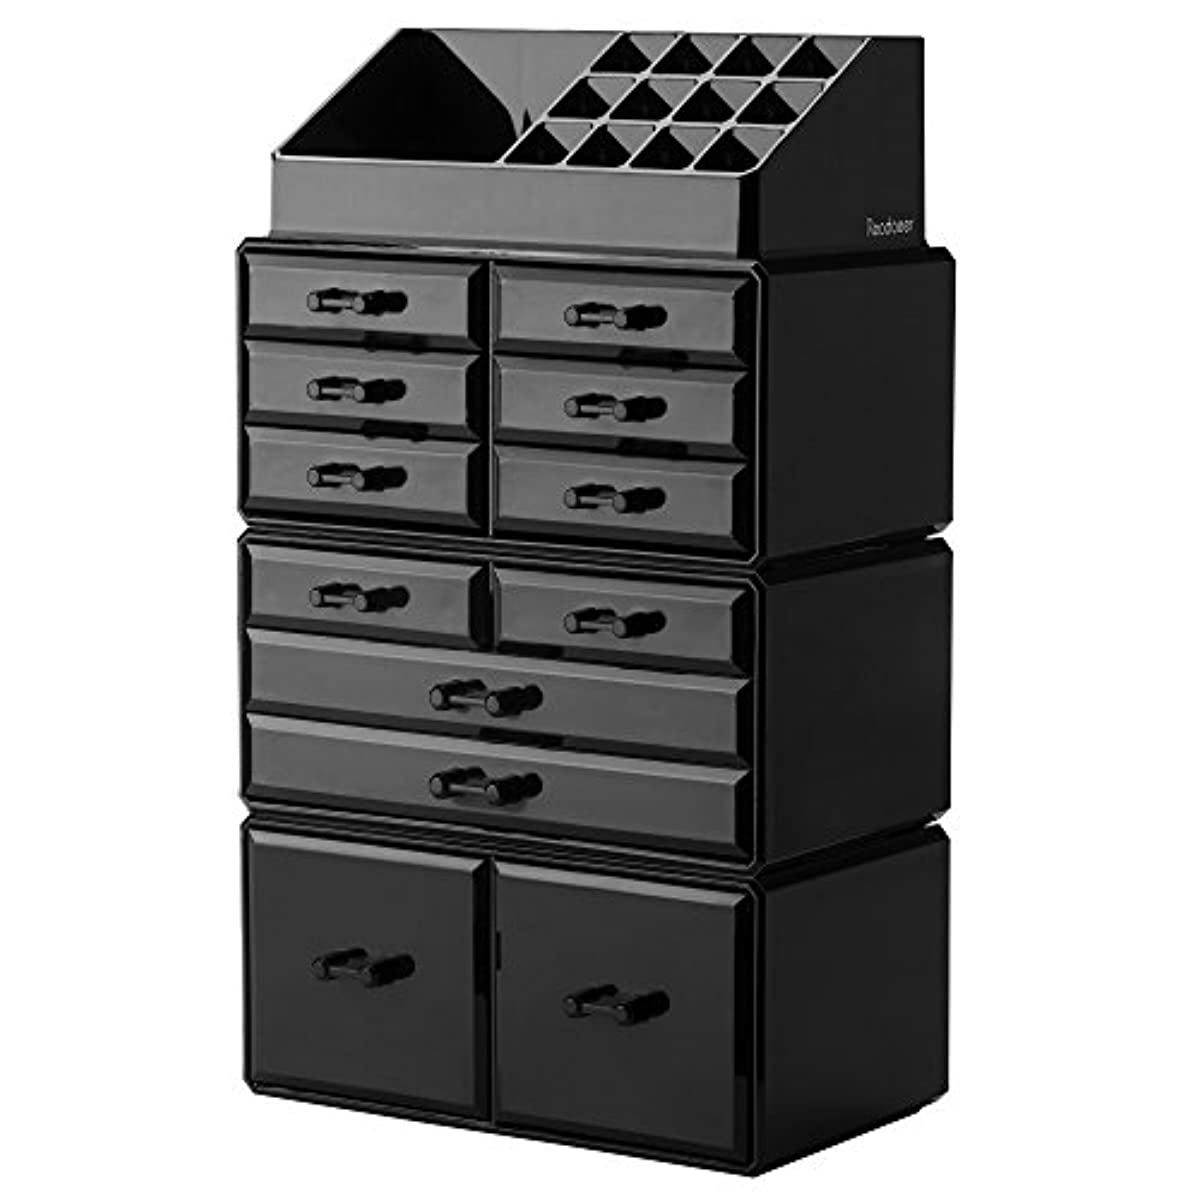 Details about (Black) Makeup Organizer Storage Drawers Display Boxes Case  with 12 Drawers